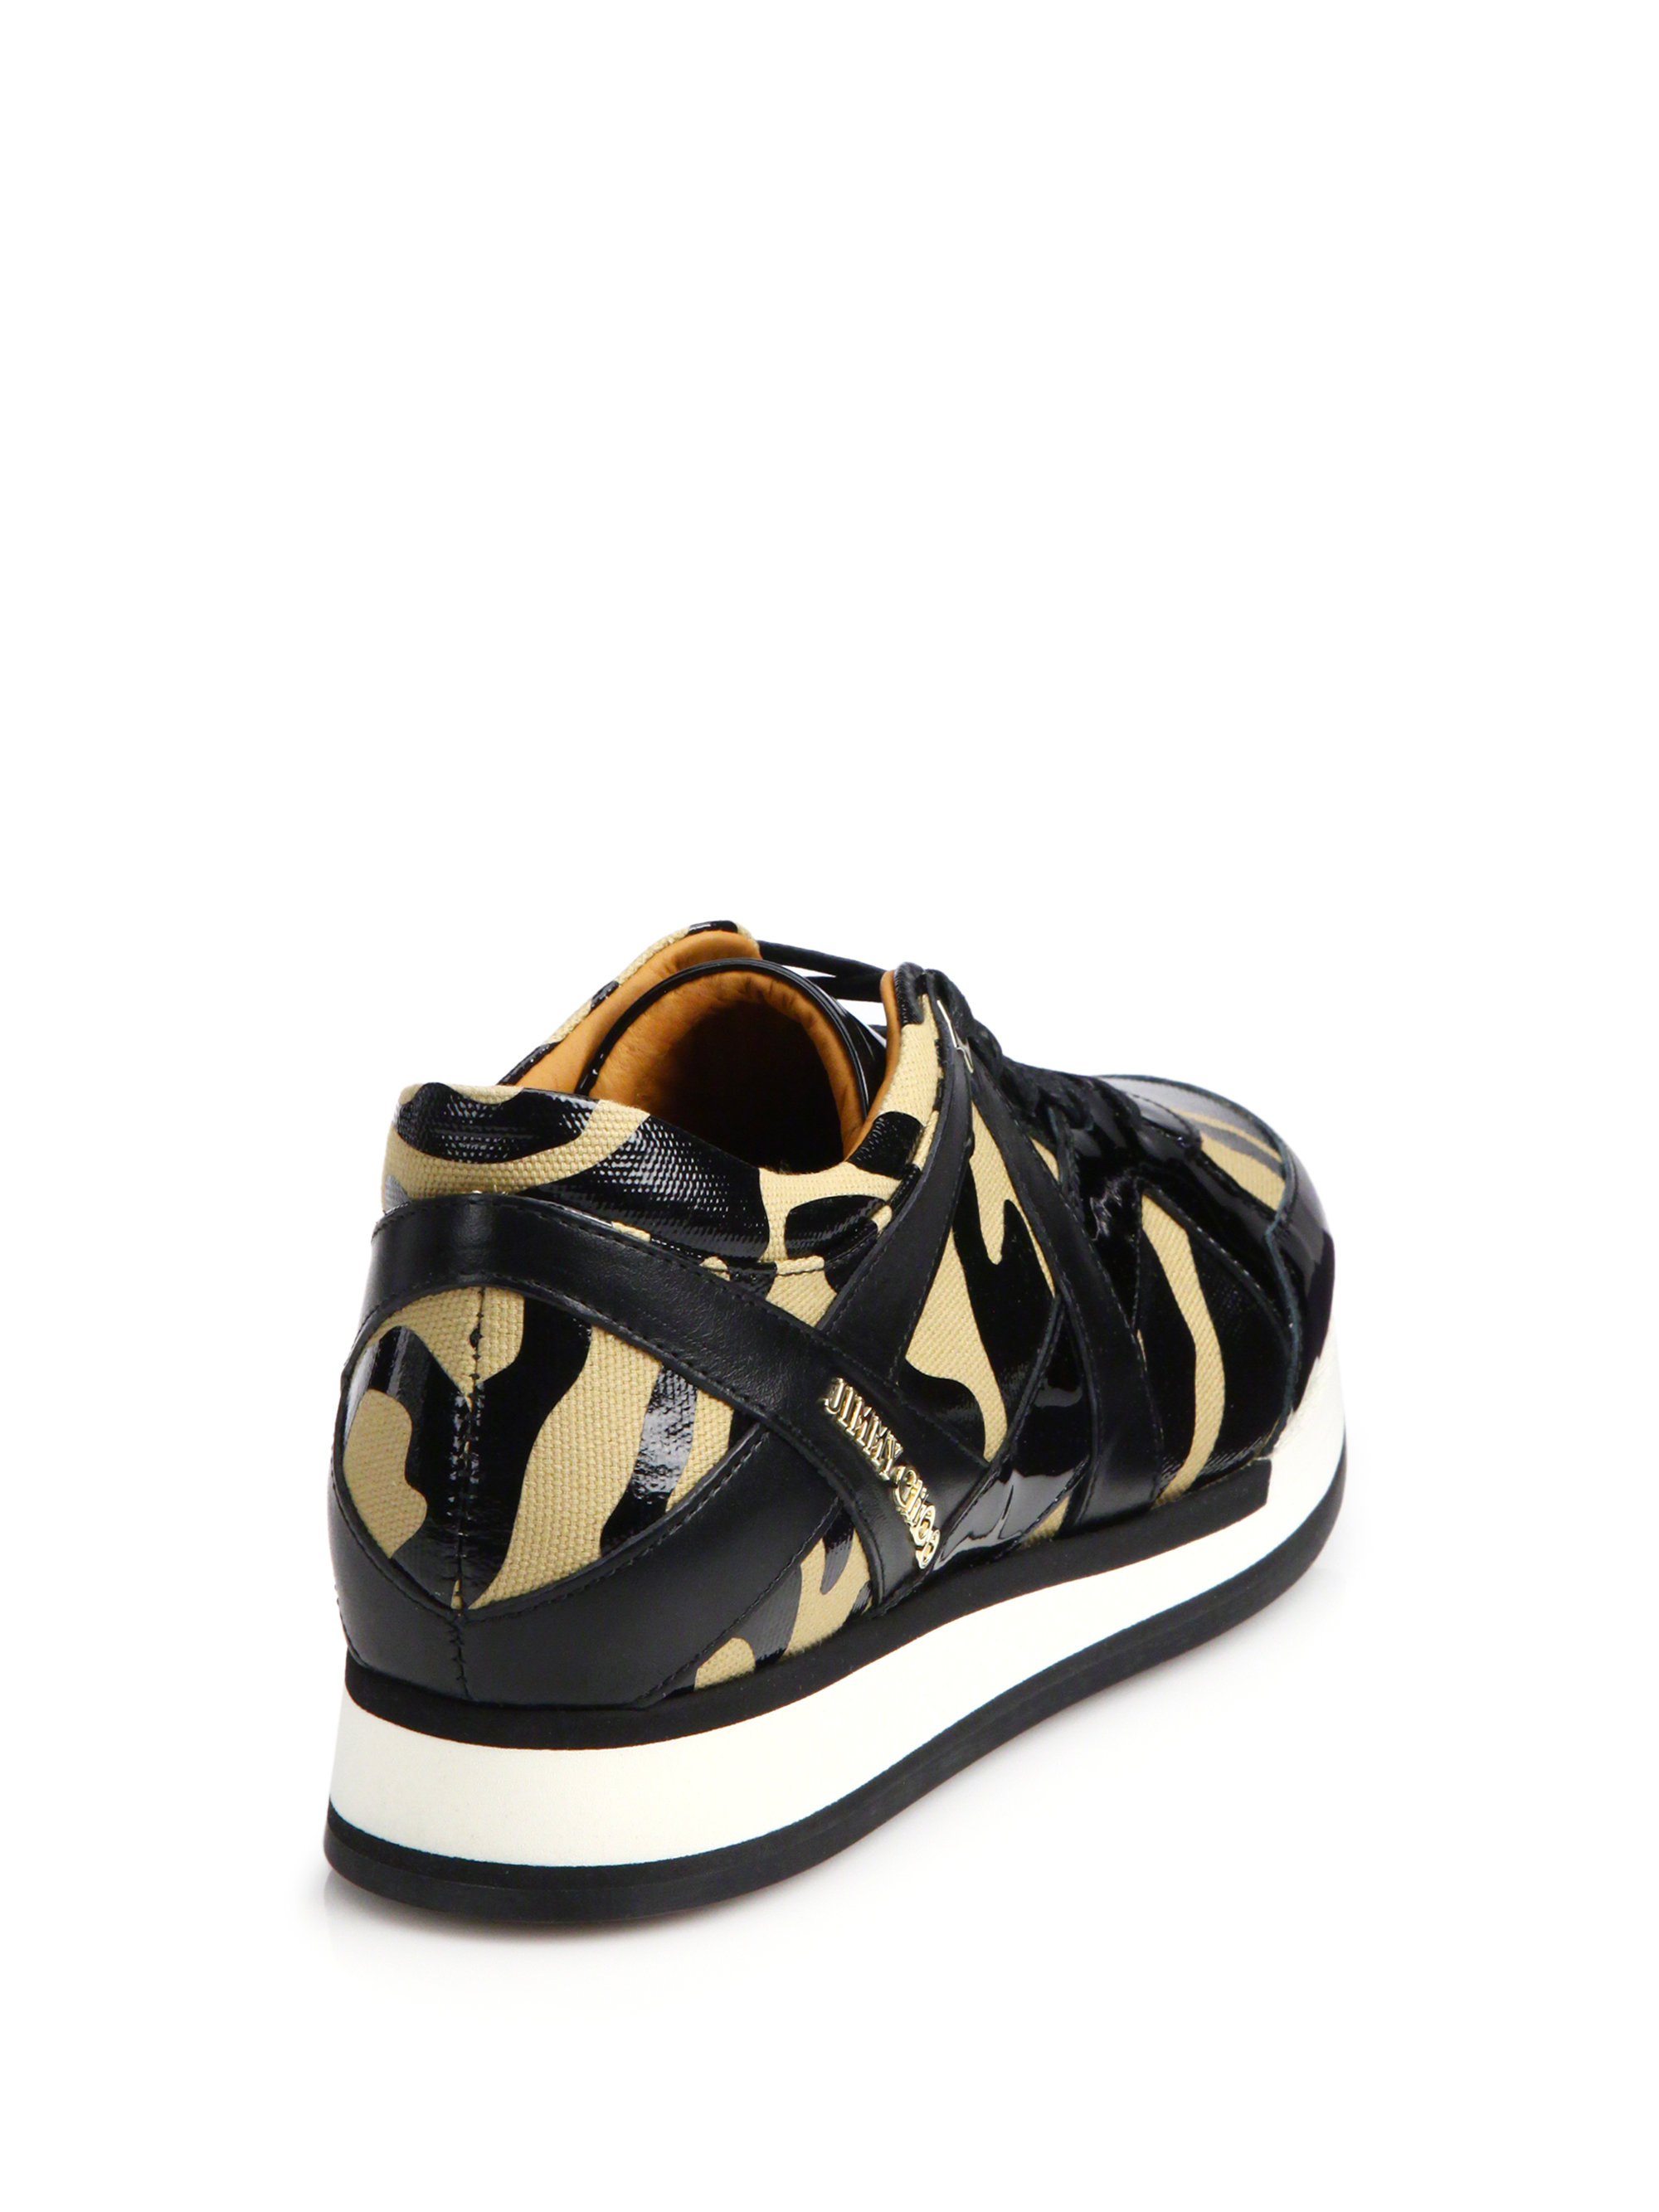 Miami leather and suede sneakers Jimmy Choo London ovh7tR